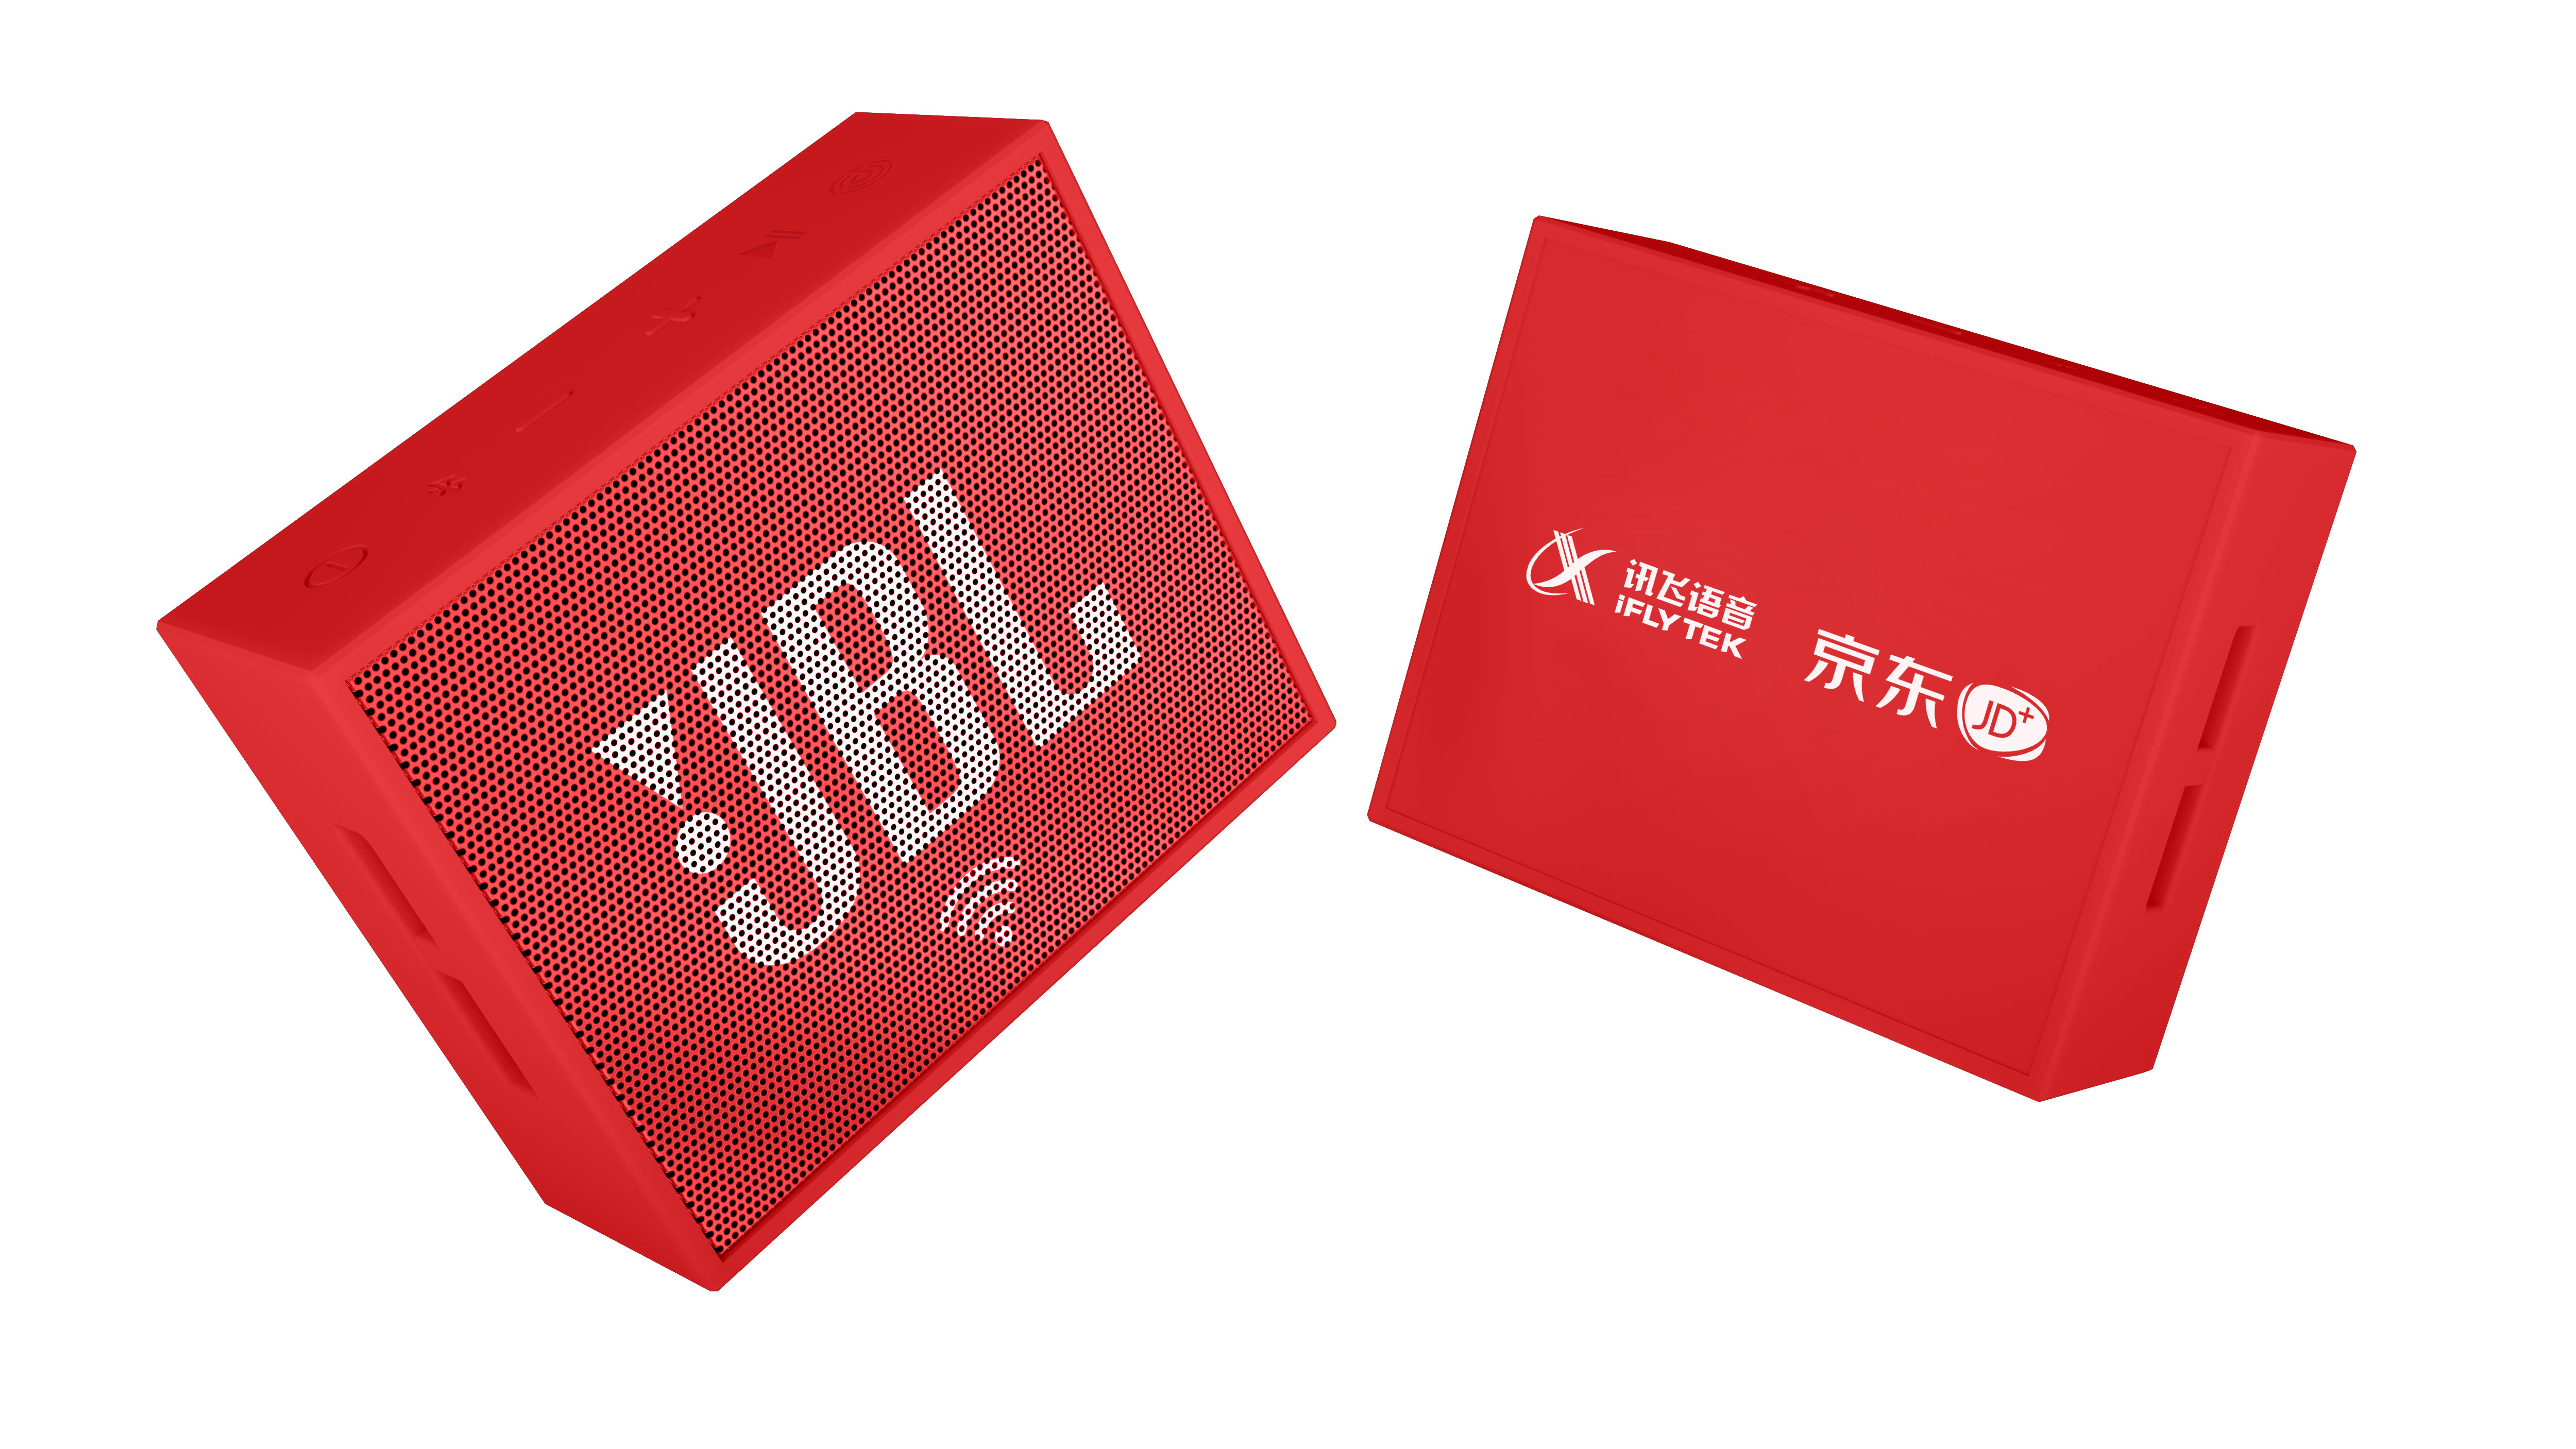 JBL Go Smart: MIPS-based connected audio